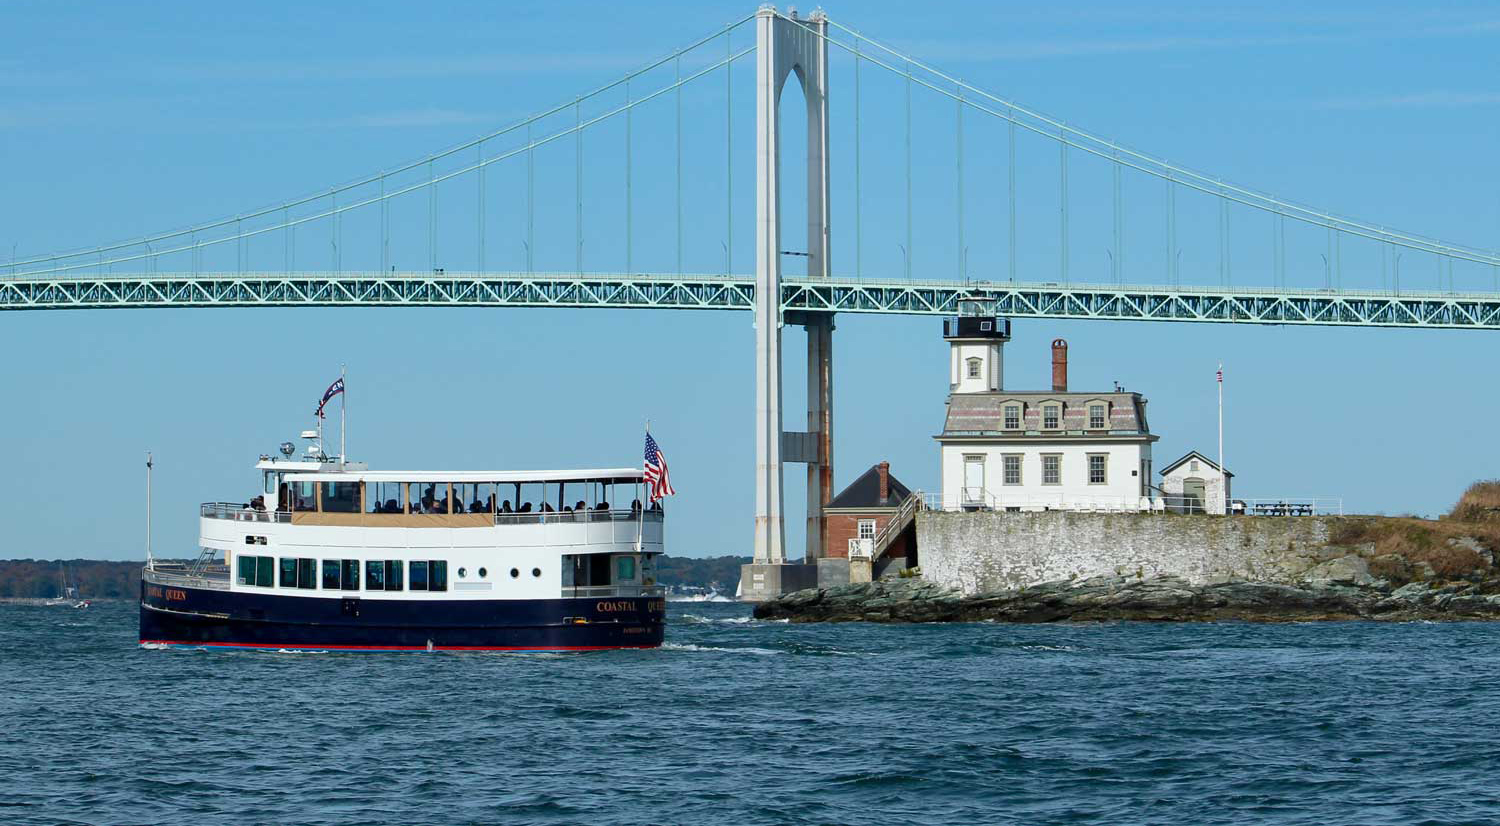 Coastal Queen Cruises from Bowens Wharf - Jamestown Newport Ferry